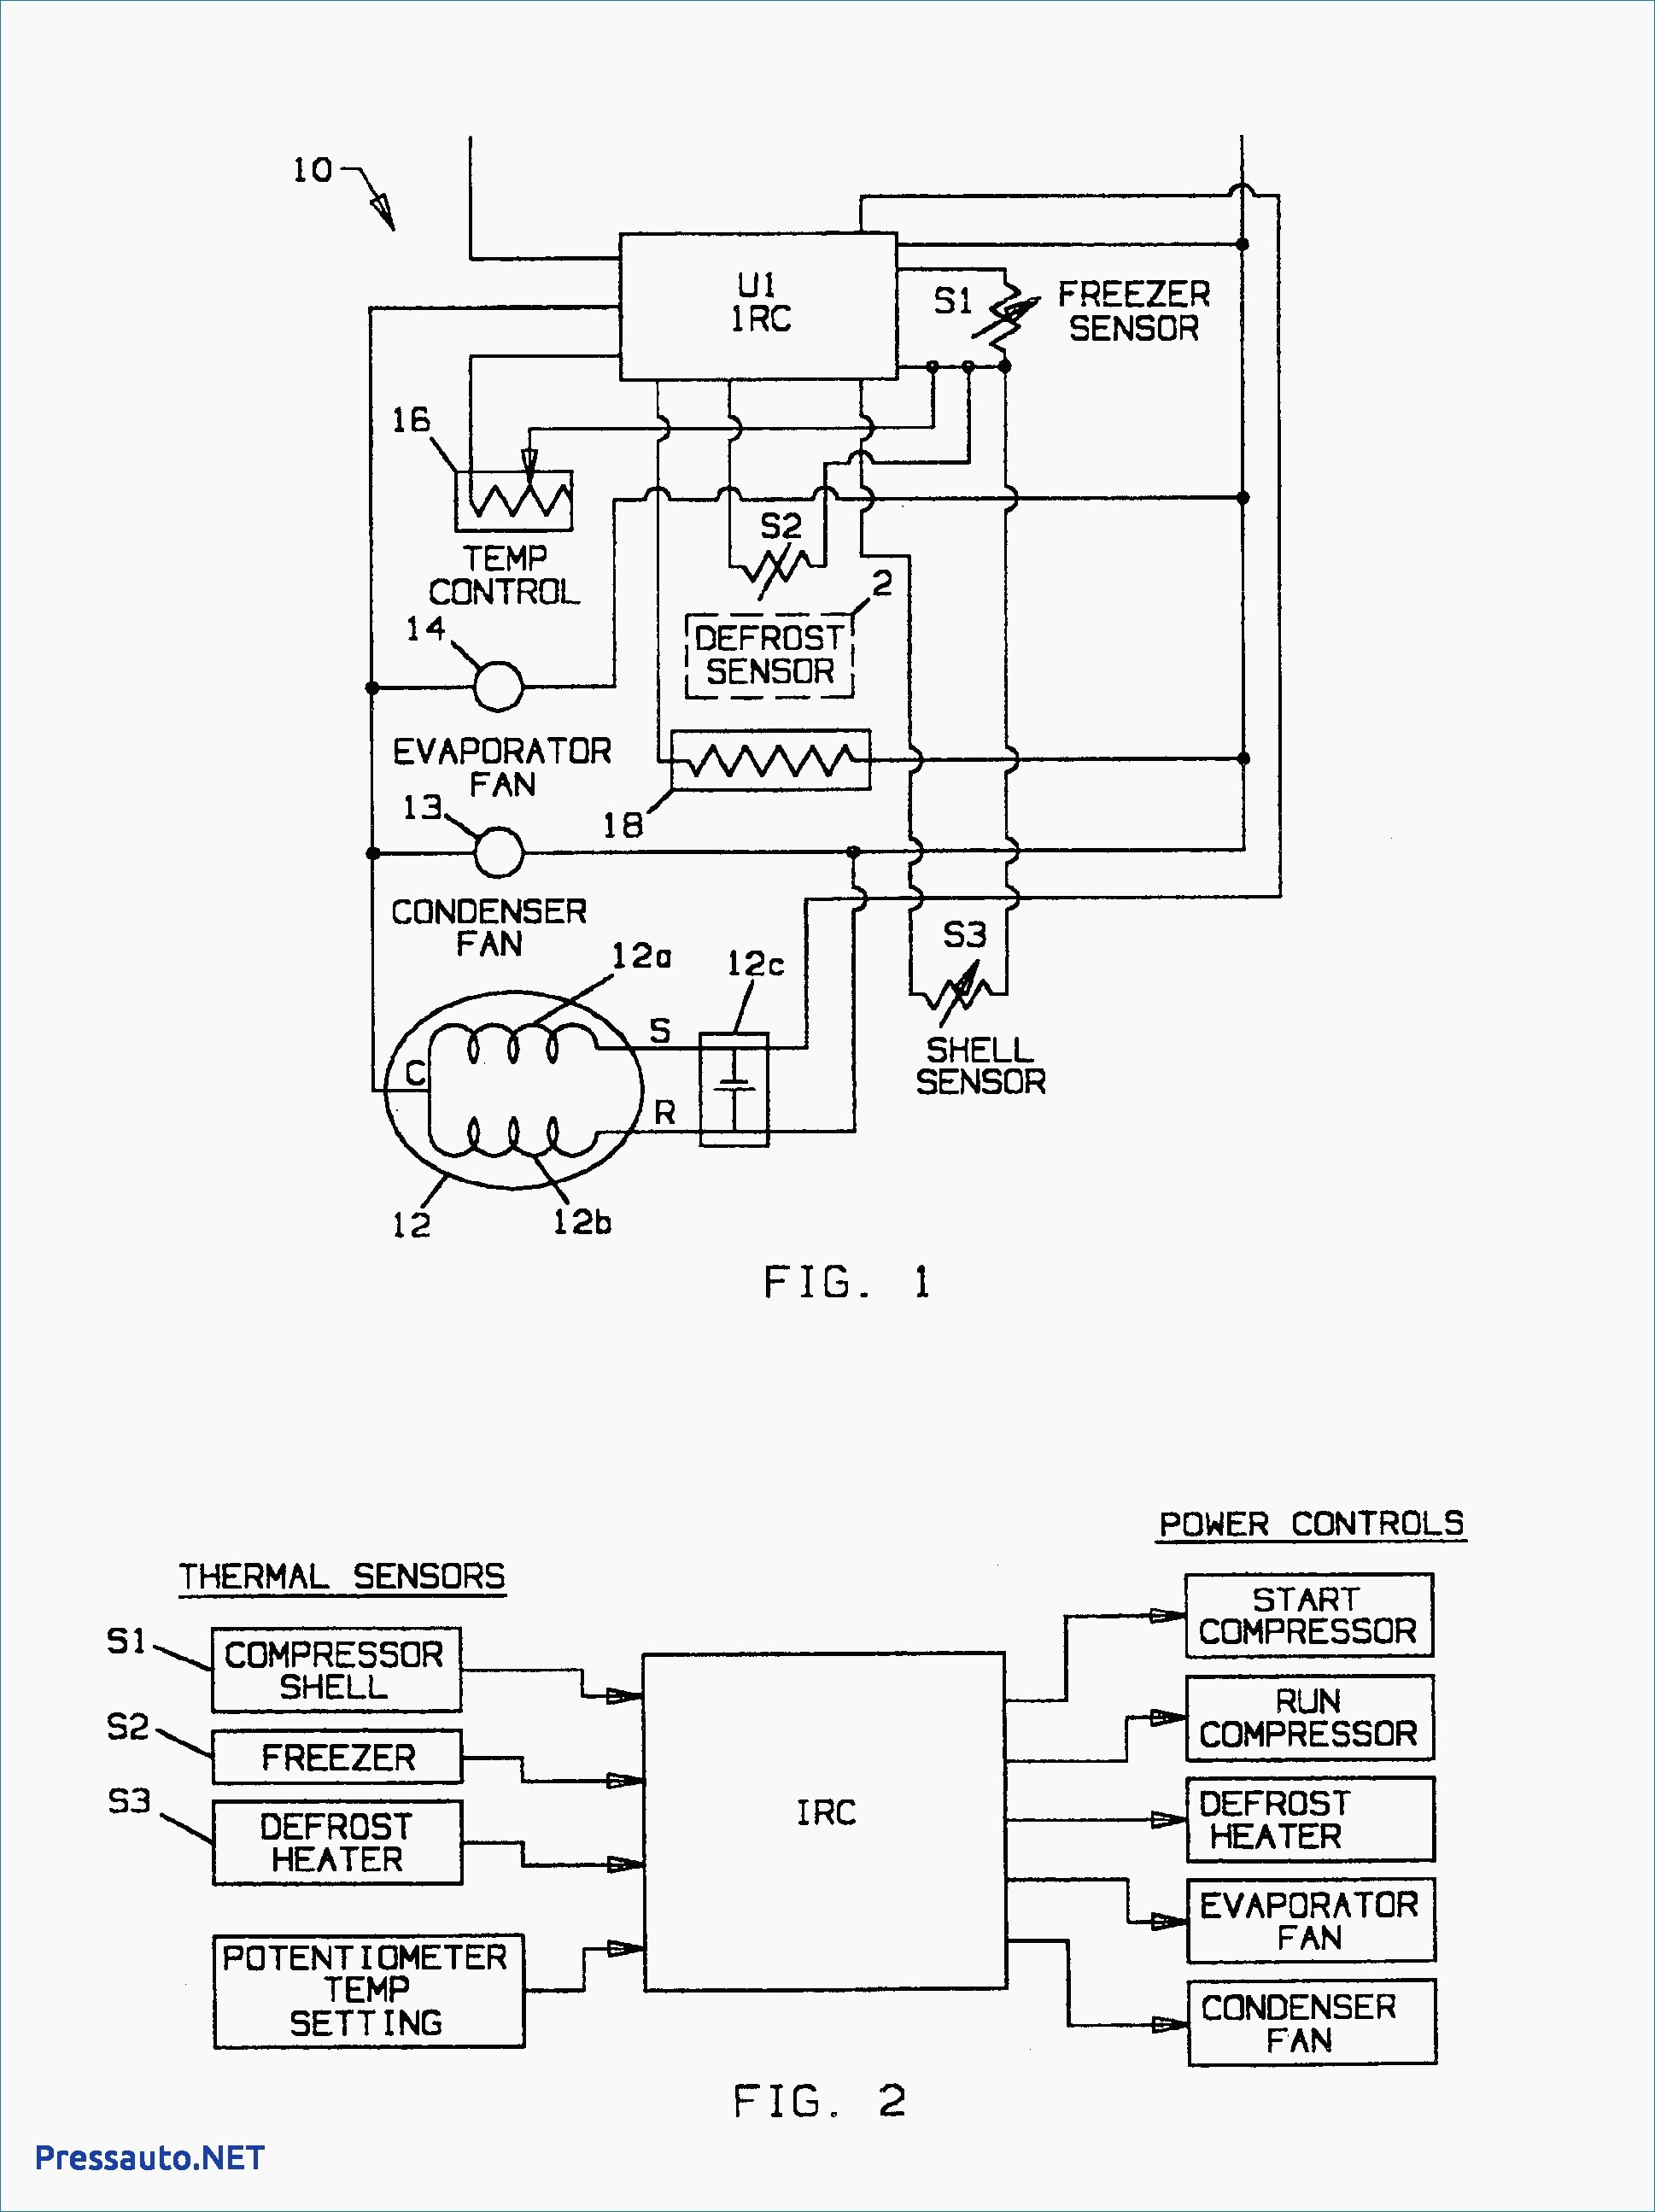 norlake walk in freezer wiring diagram walk in refrigerator wiring diagram walk in freezer defrost timer wiring diagram | free wiring ...